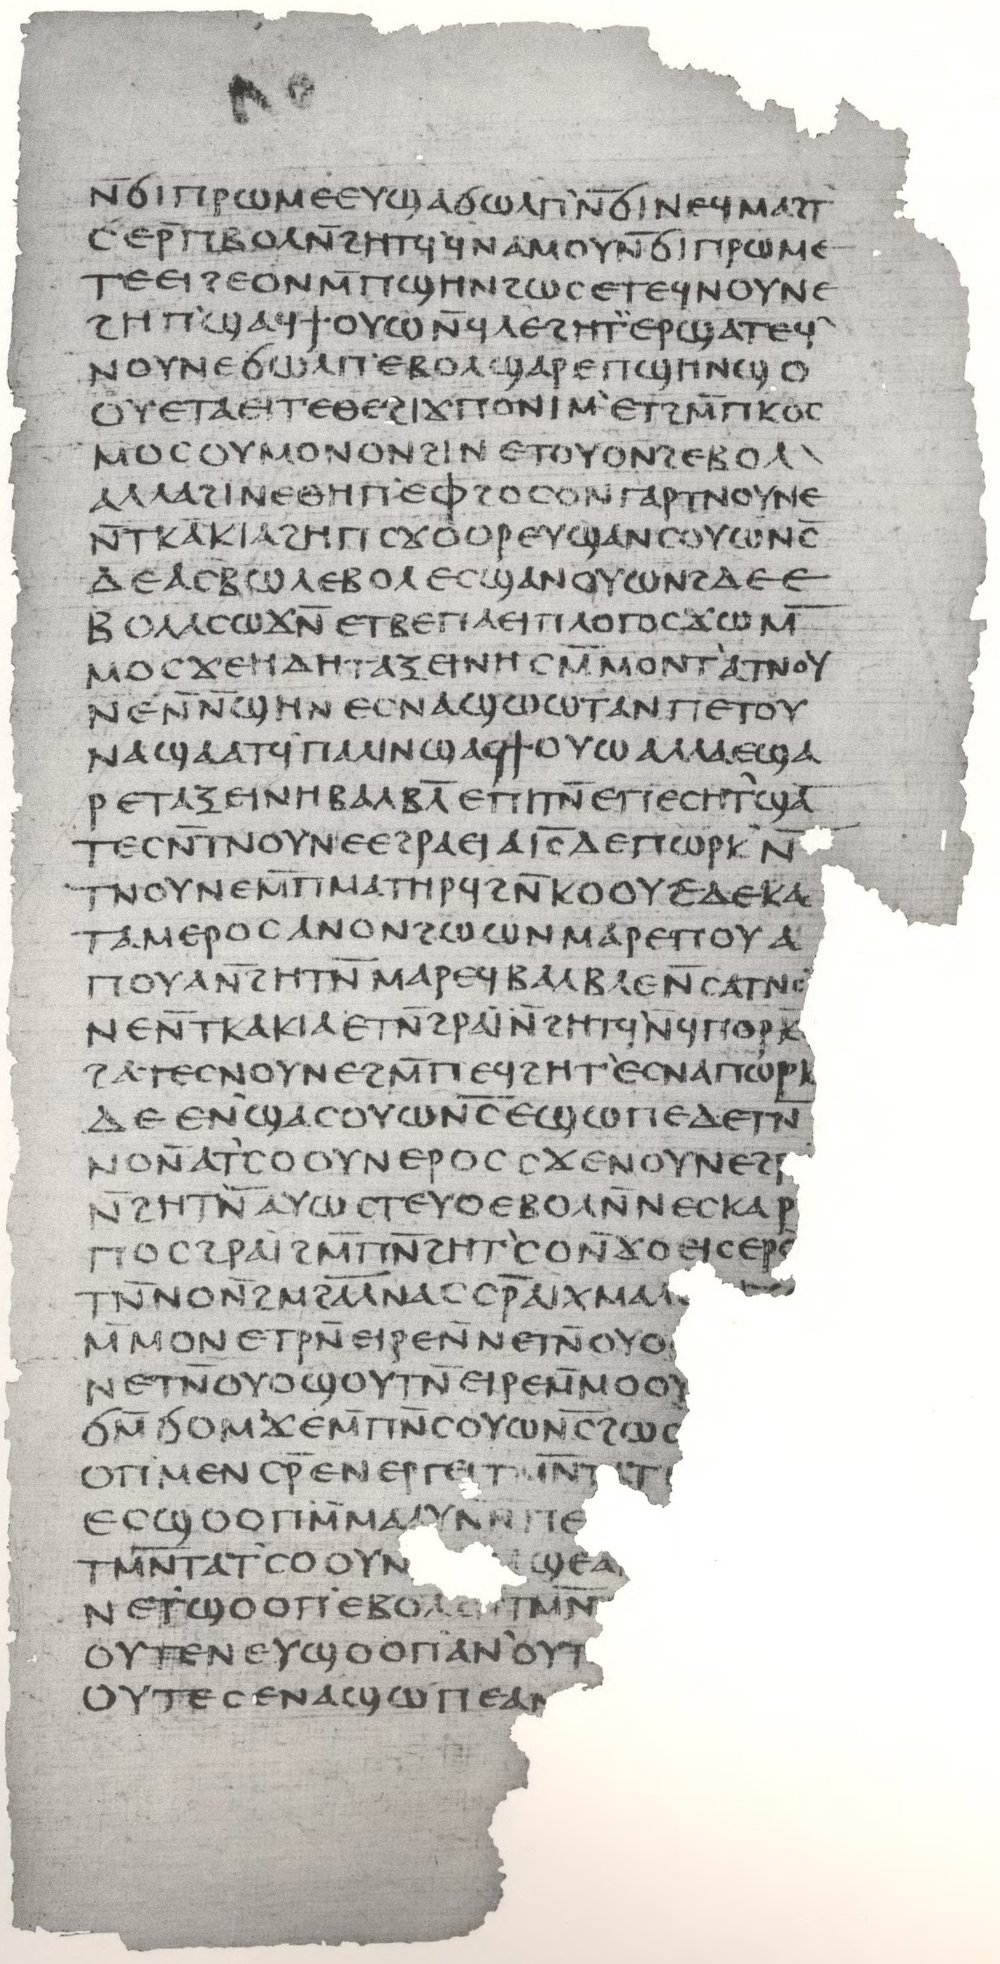 Gospel_of_Philip_facsimile_Page_83.jpg